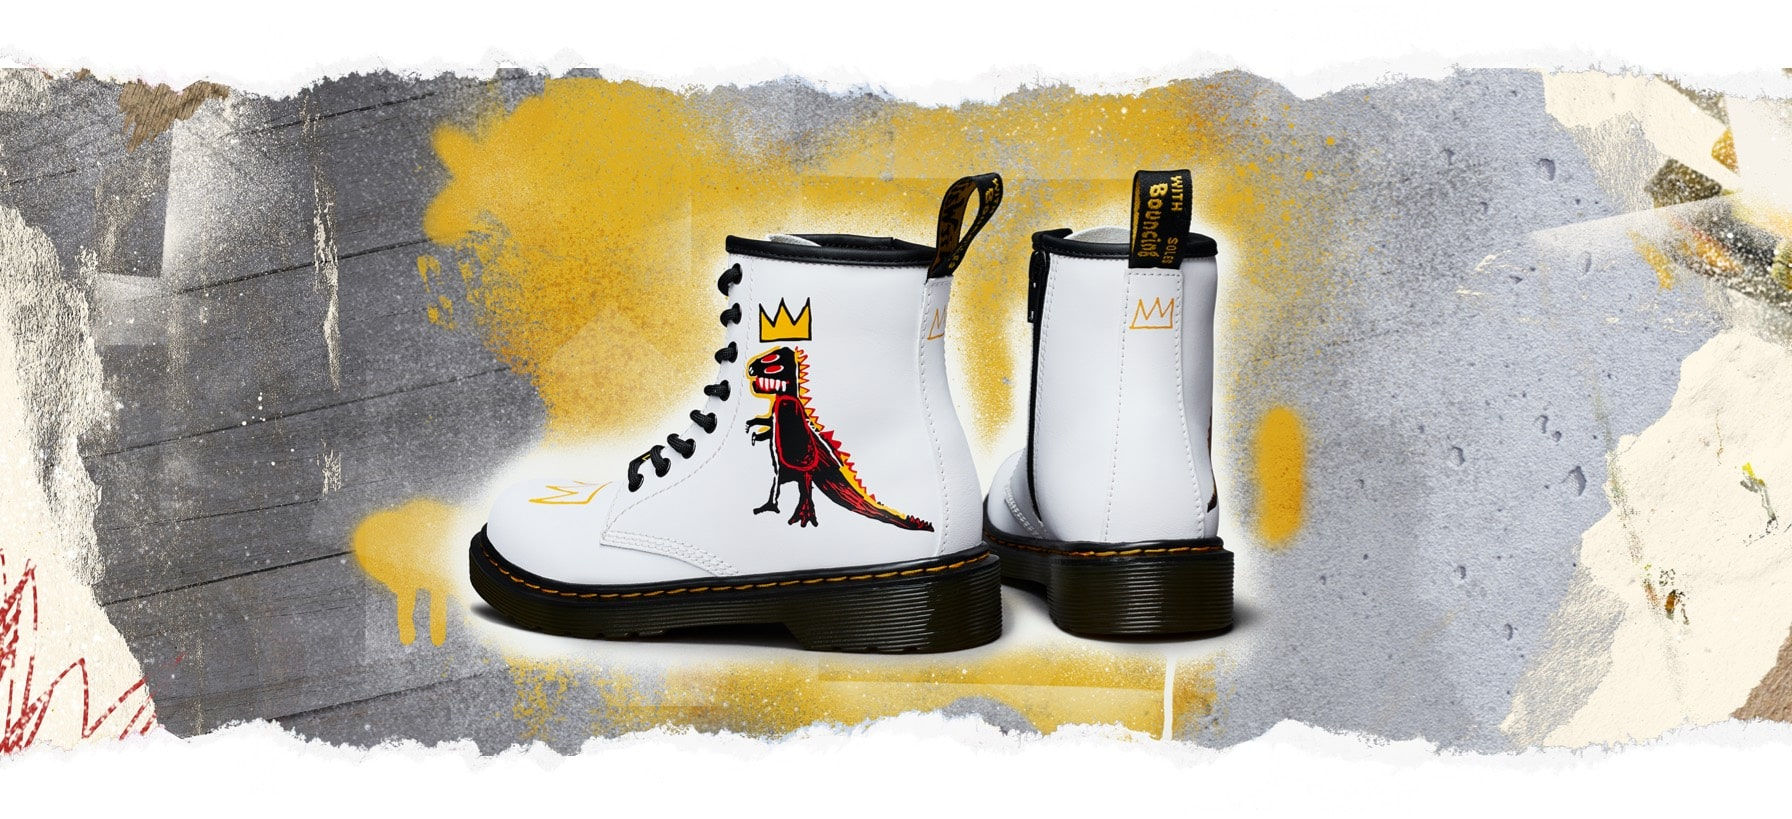 Boots 1460 x Jean-Michel Basquiat, children's edition inspired by